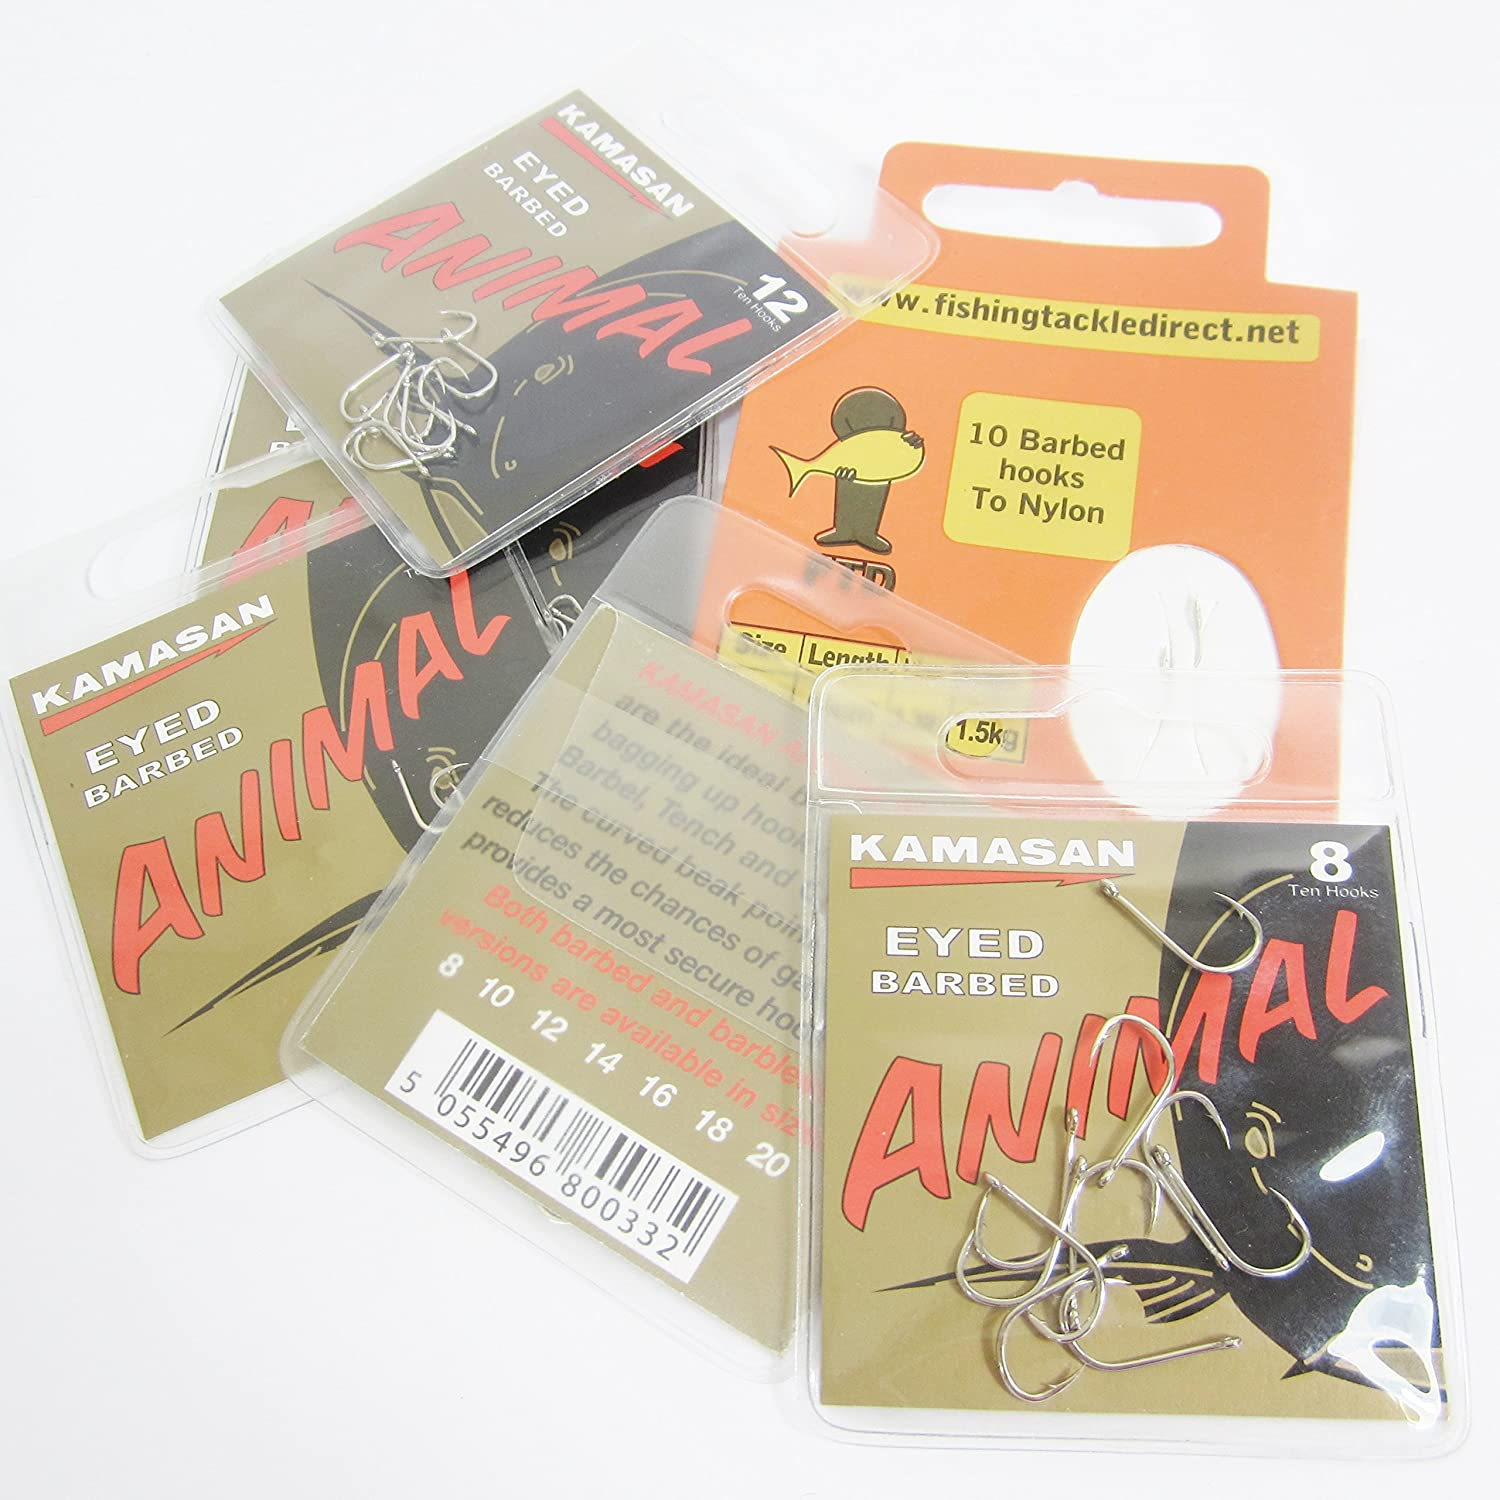 12 3 packs of 10 KAMASAN ANIMAL FTD 10 BARBED comes with 10 FTD Barbed Hooks to Nylon Eyed Fishing Hooks Sizes 8 14 /& 16 Min 30